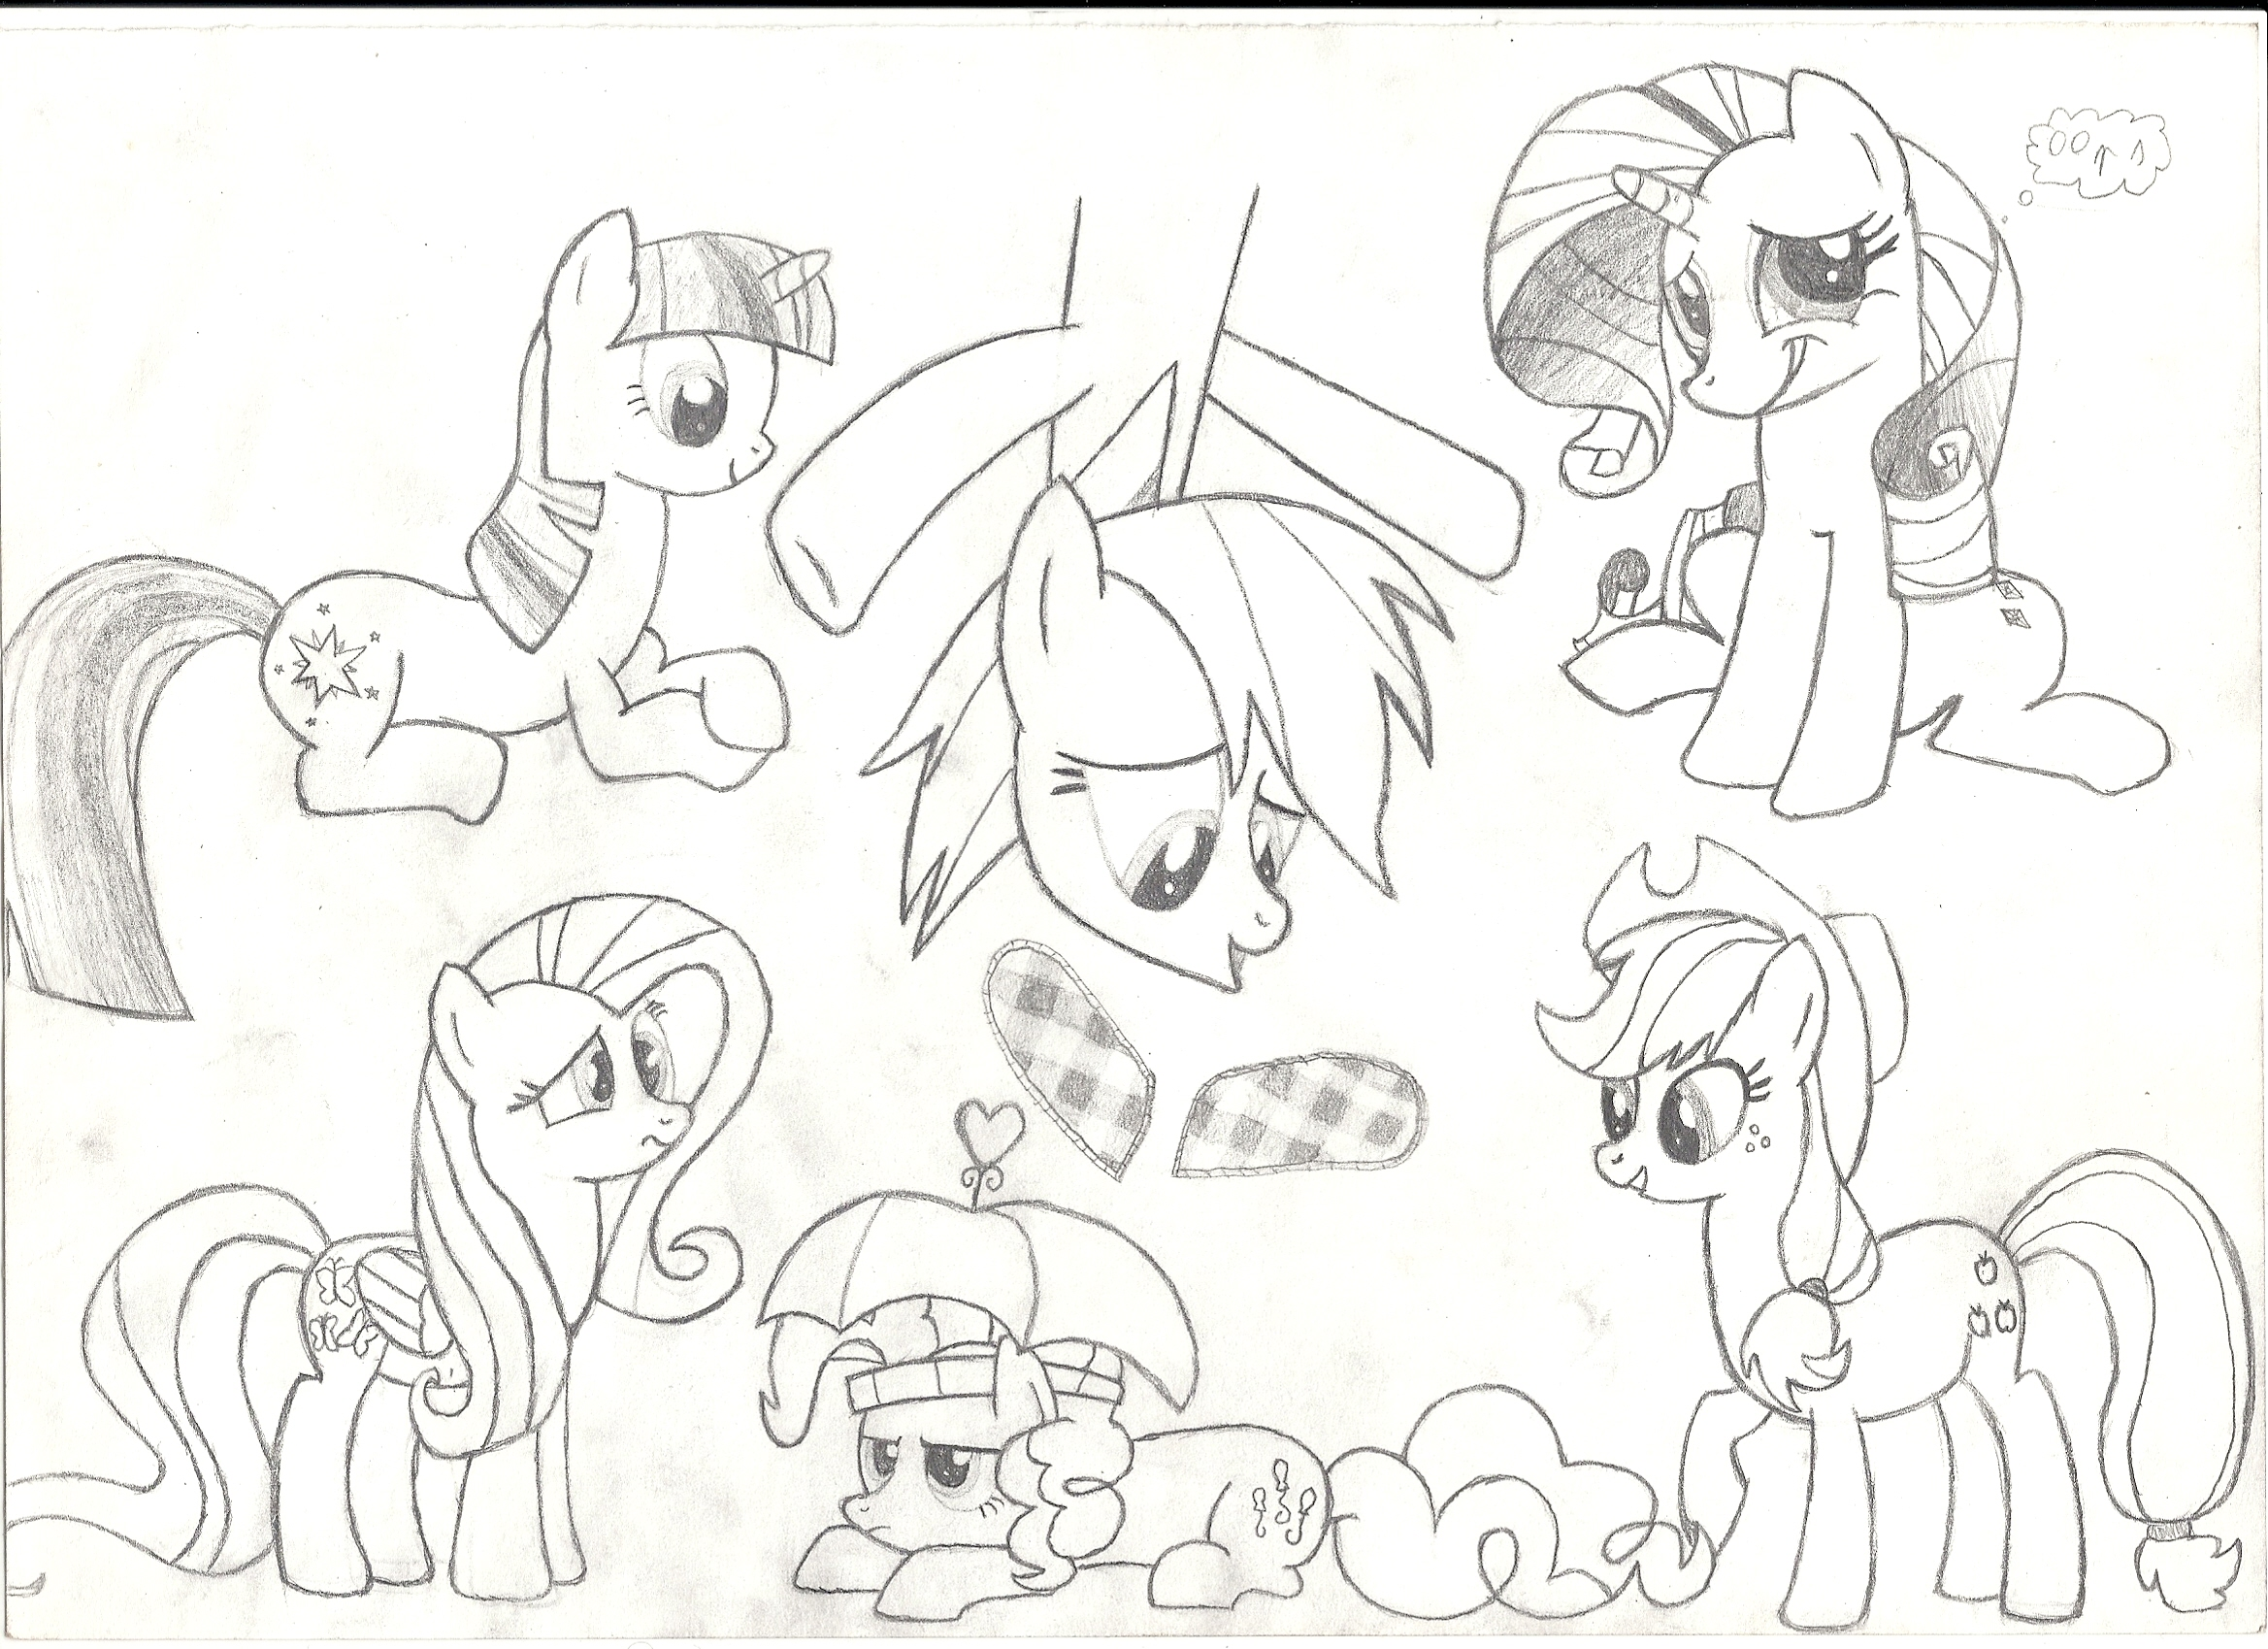 Mah pony drawing attempts Mlp_fim_characters_sketch_2_by_rohulk2008-d4axoew